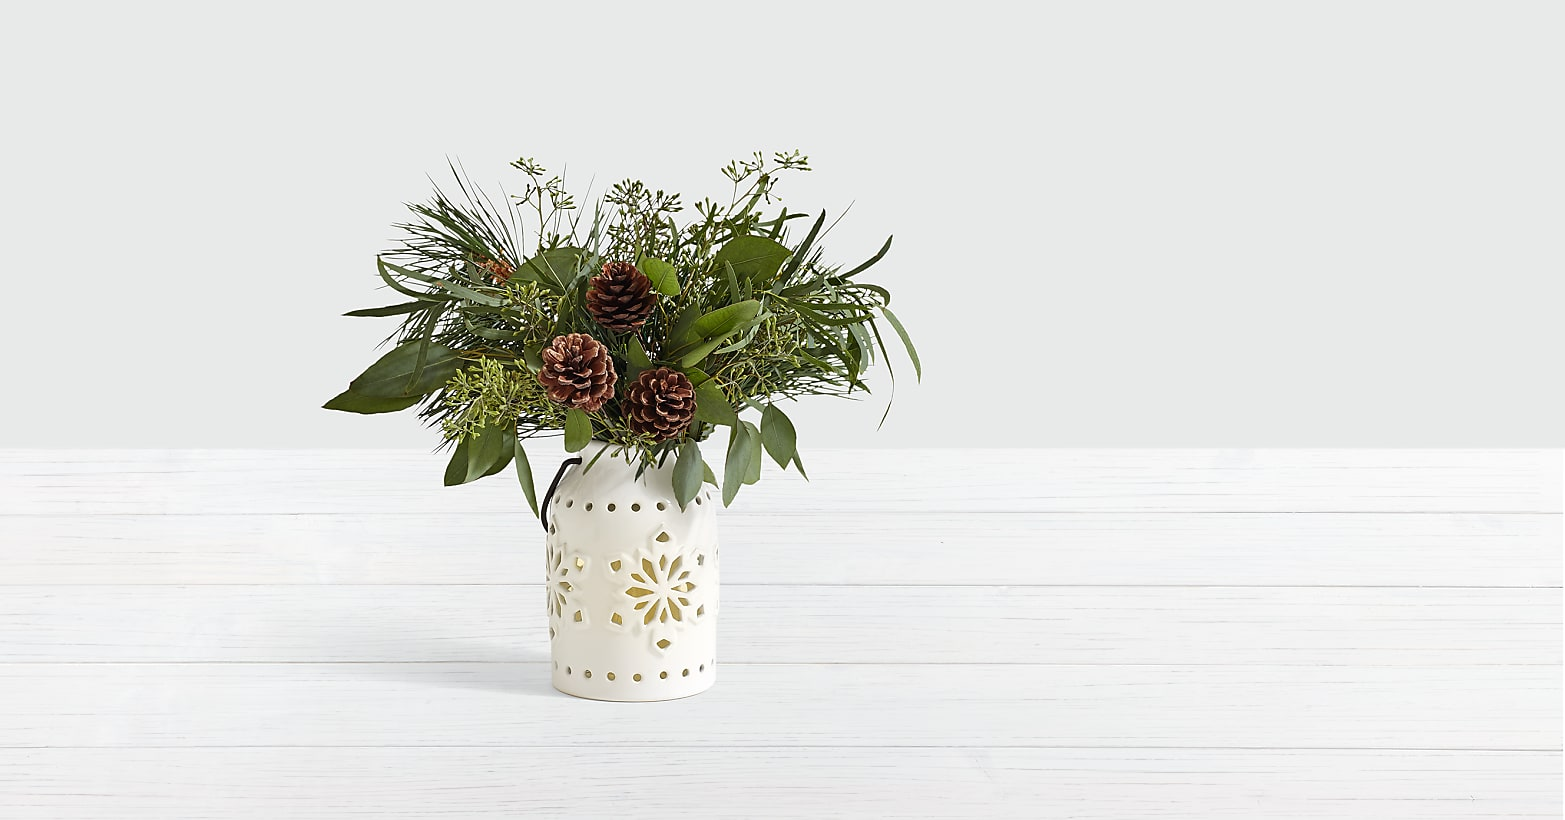 Wintry Pine And Eucalyptus Centerpiece with Lights